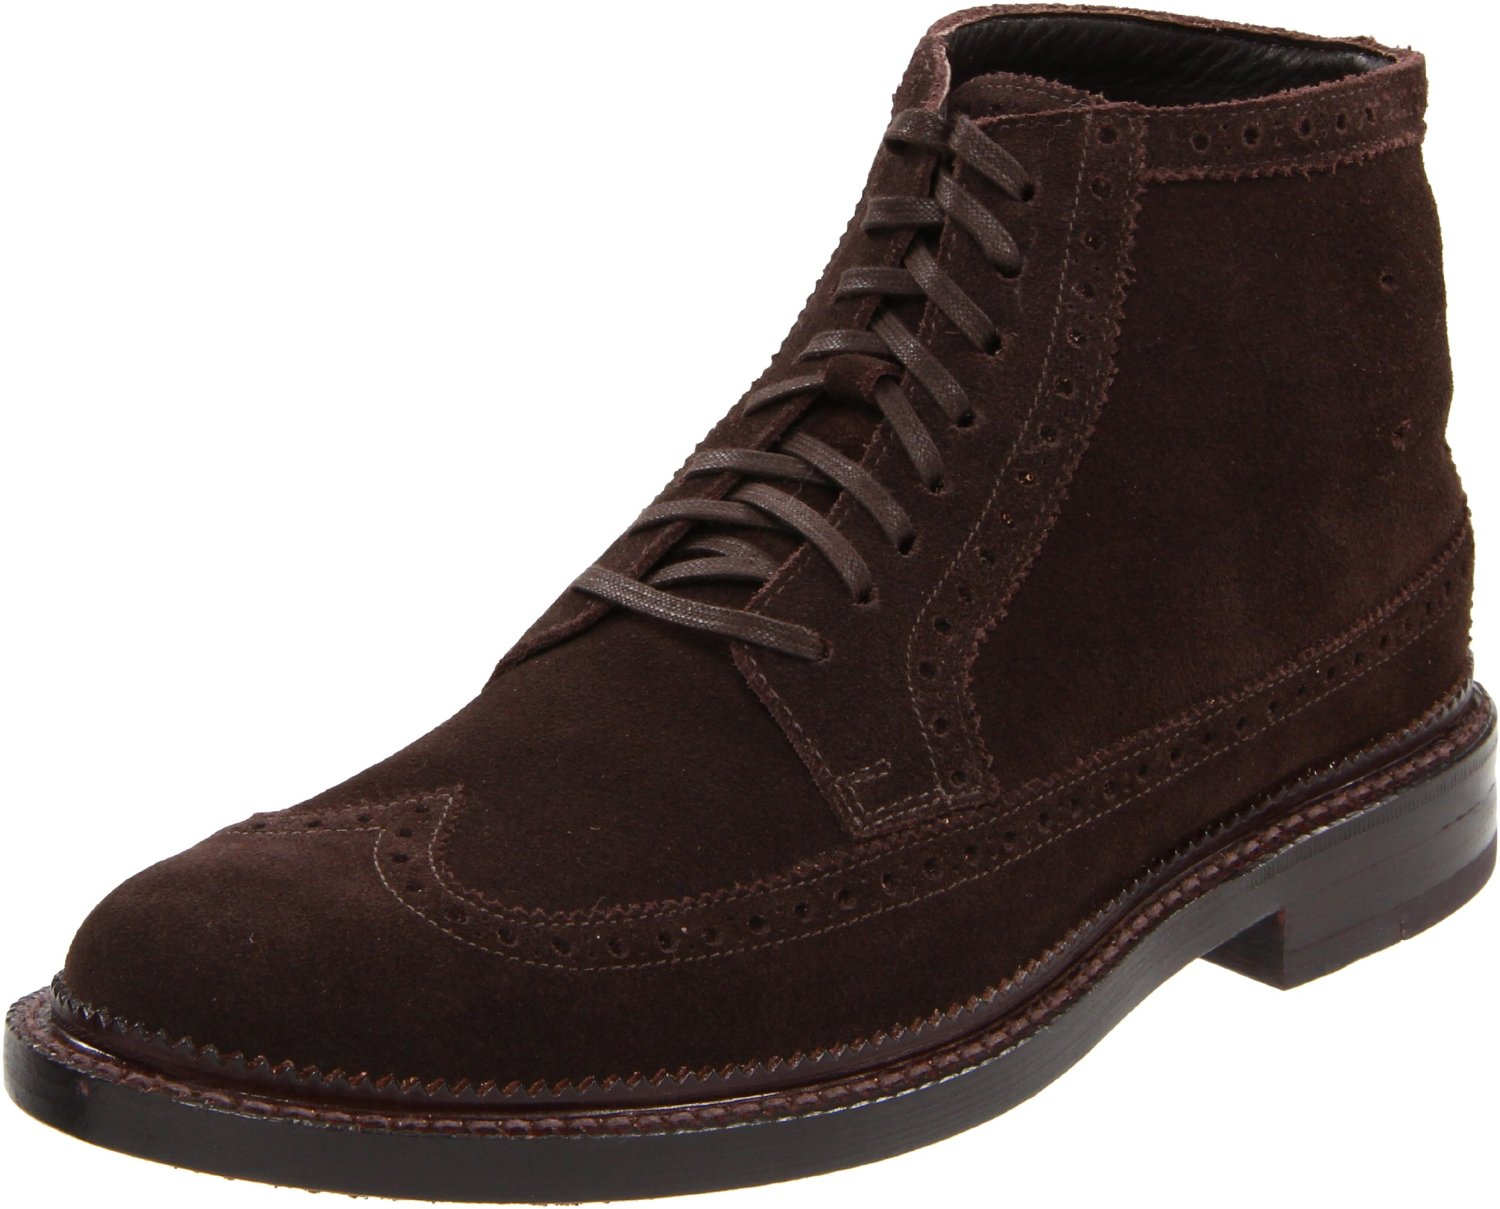 cole haan cole haan mens jayhawker ankle boot in brown for men t moro suede lyst. Black Bedroom Furniture Sets. Home Design Ideas